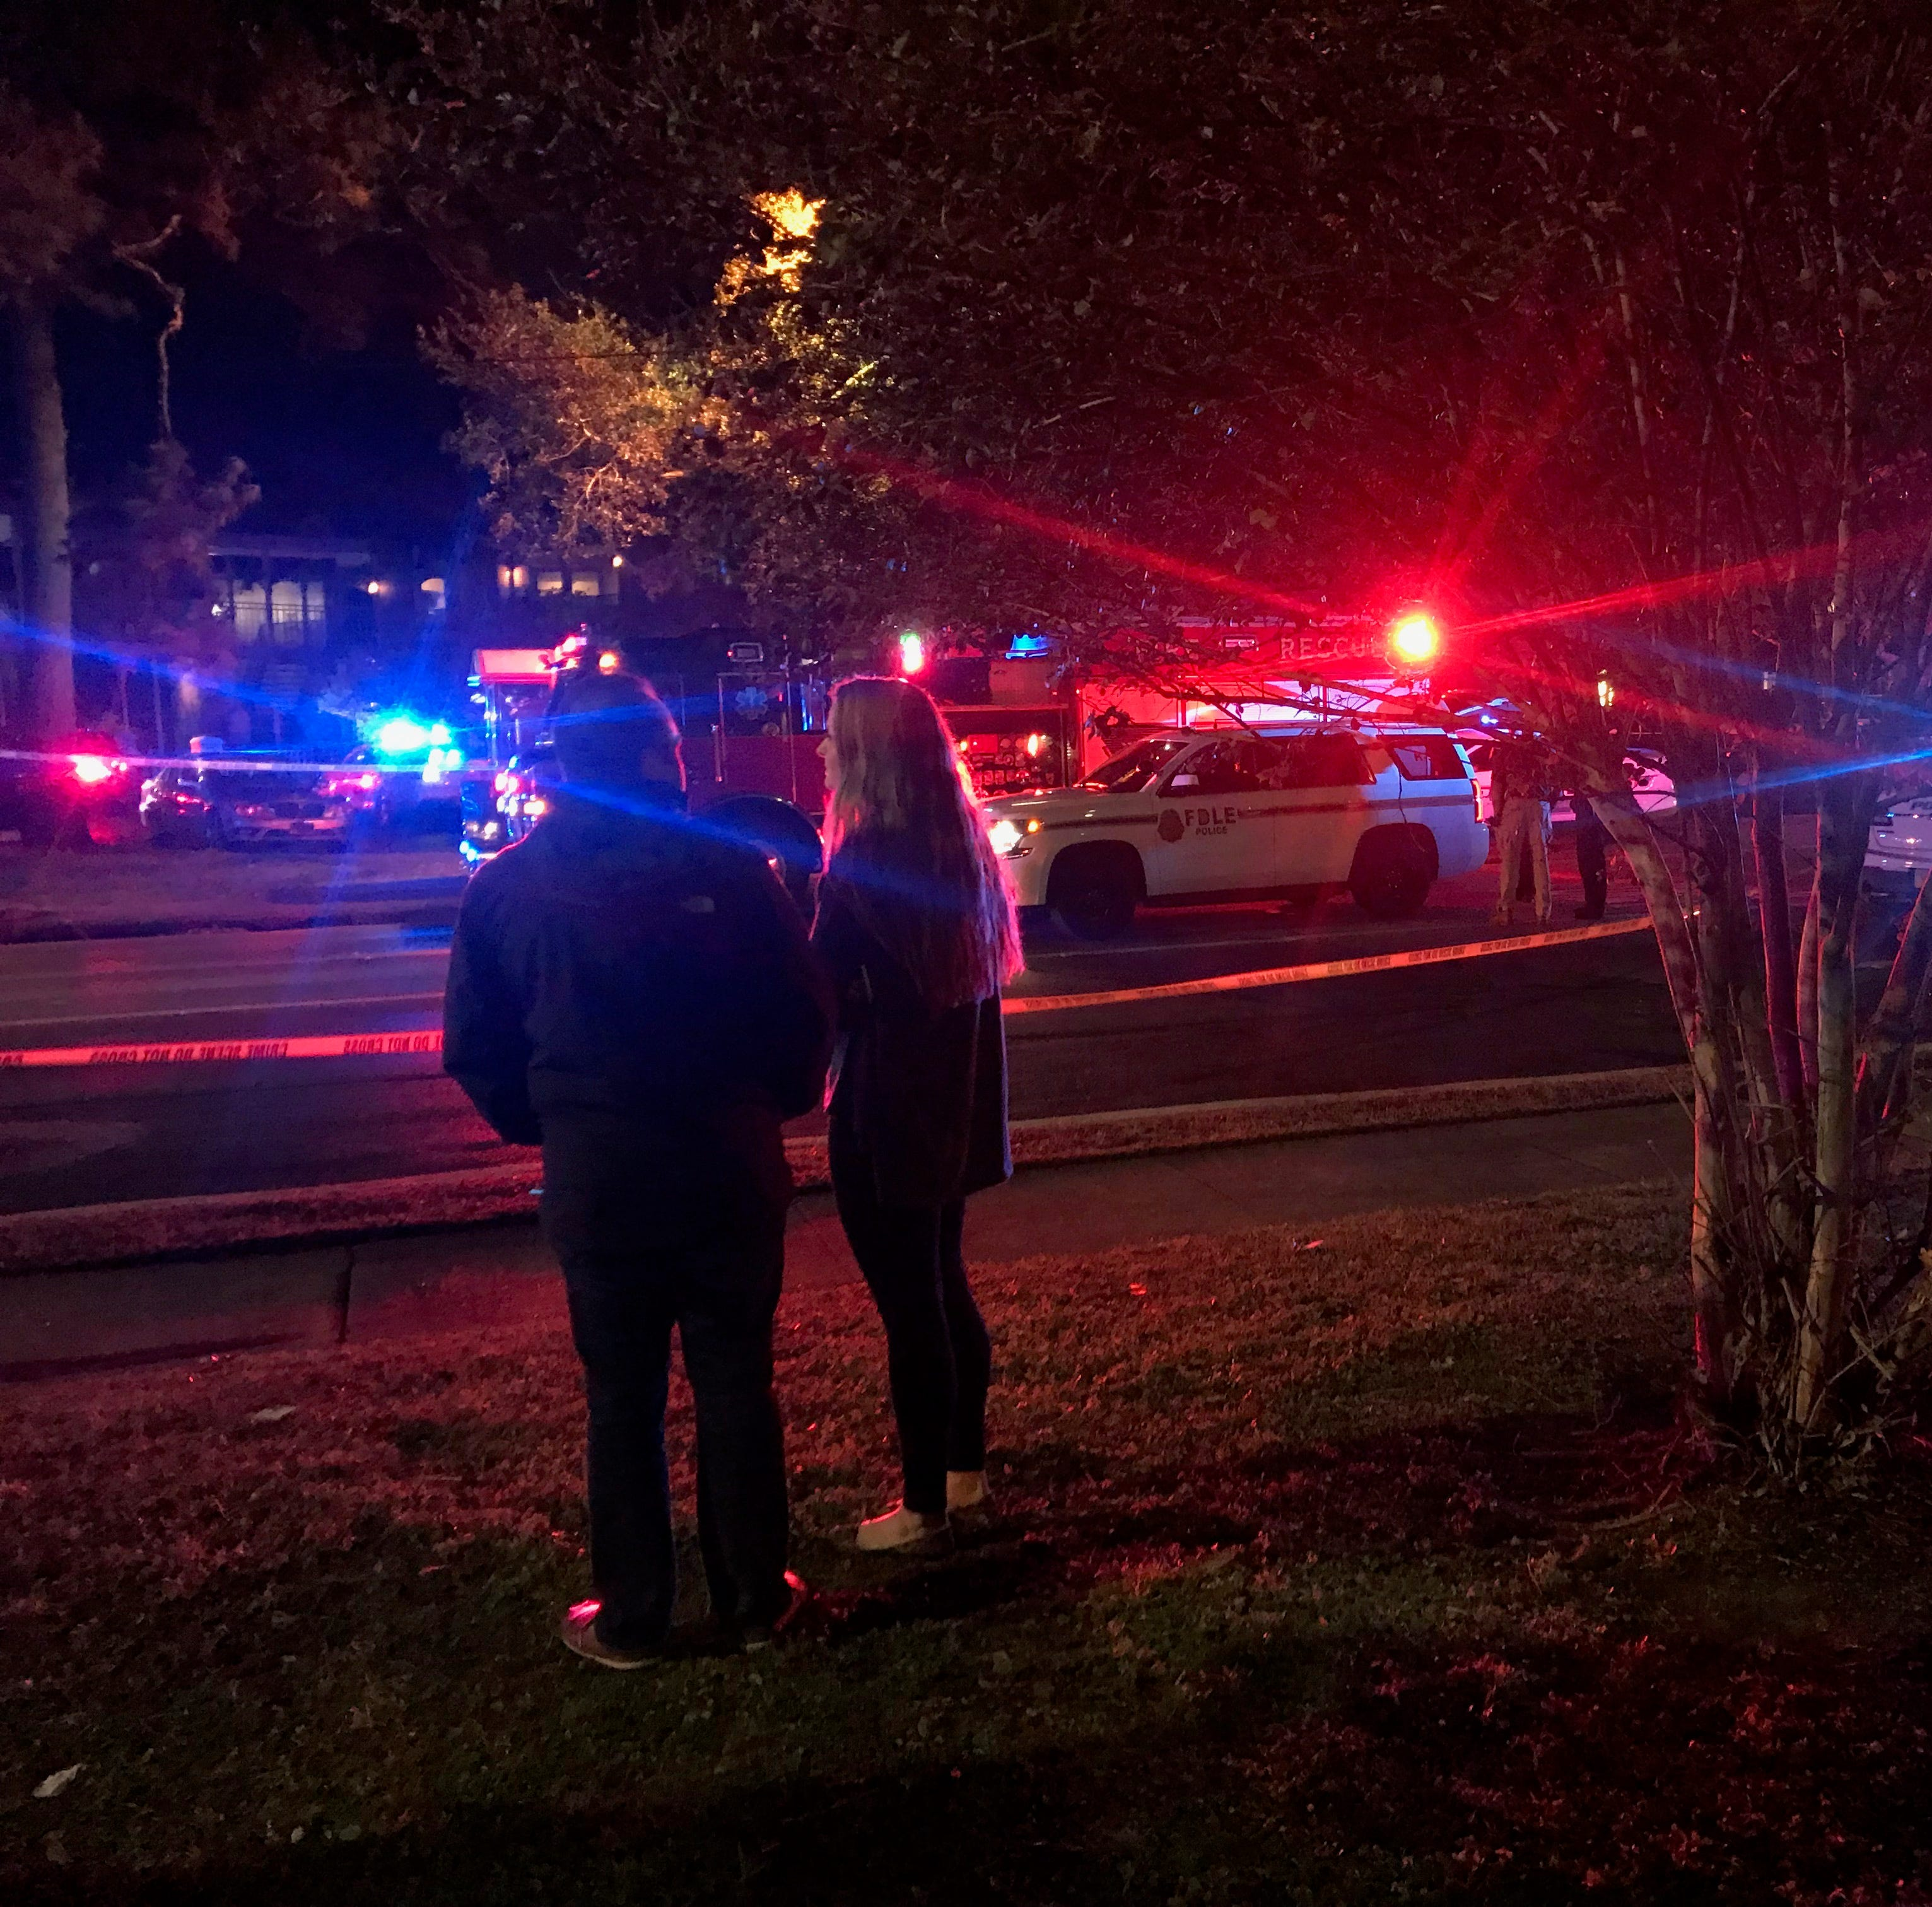 'We have to do better': Tallahassee yoga studio gunman evaded consequences at every turn